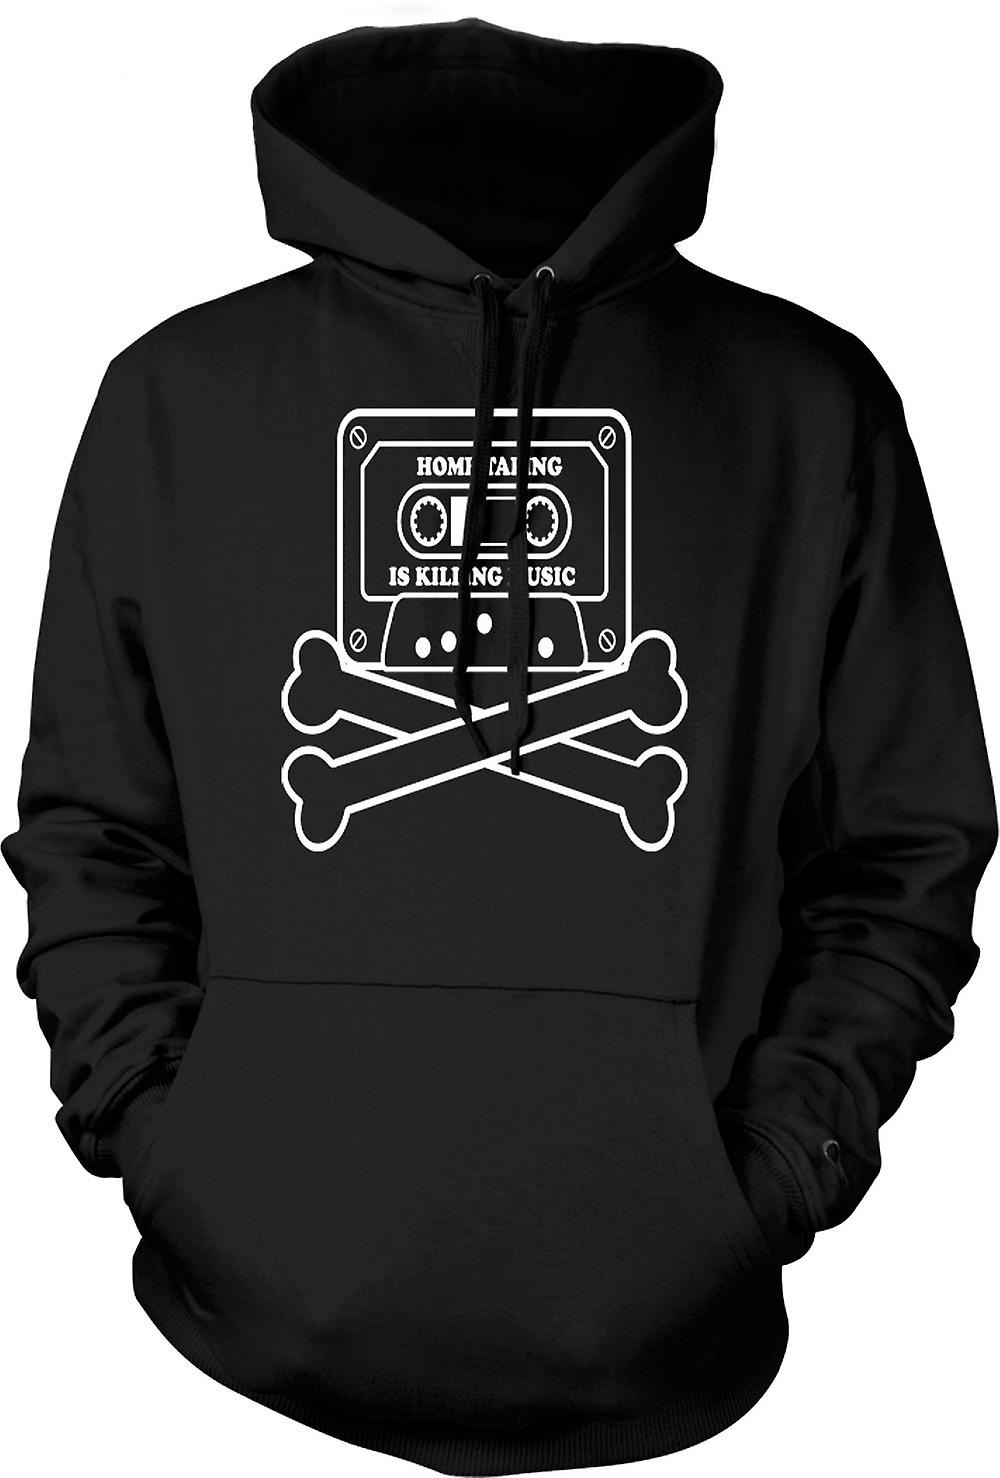 Mens Hoodie - Home Taping pirateria - Funny